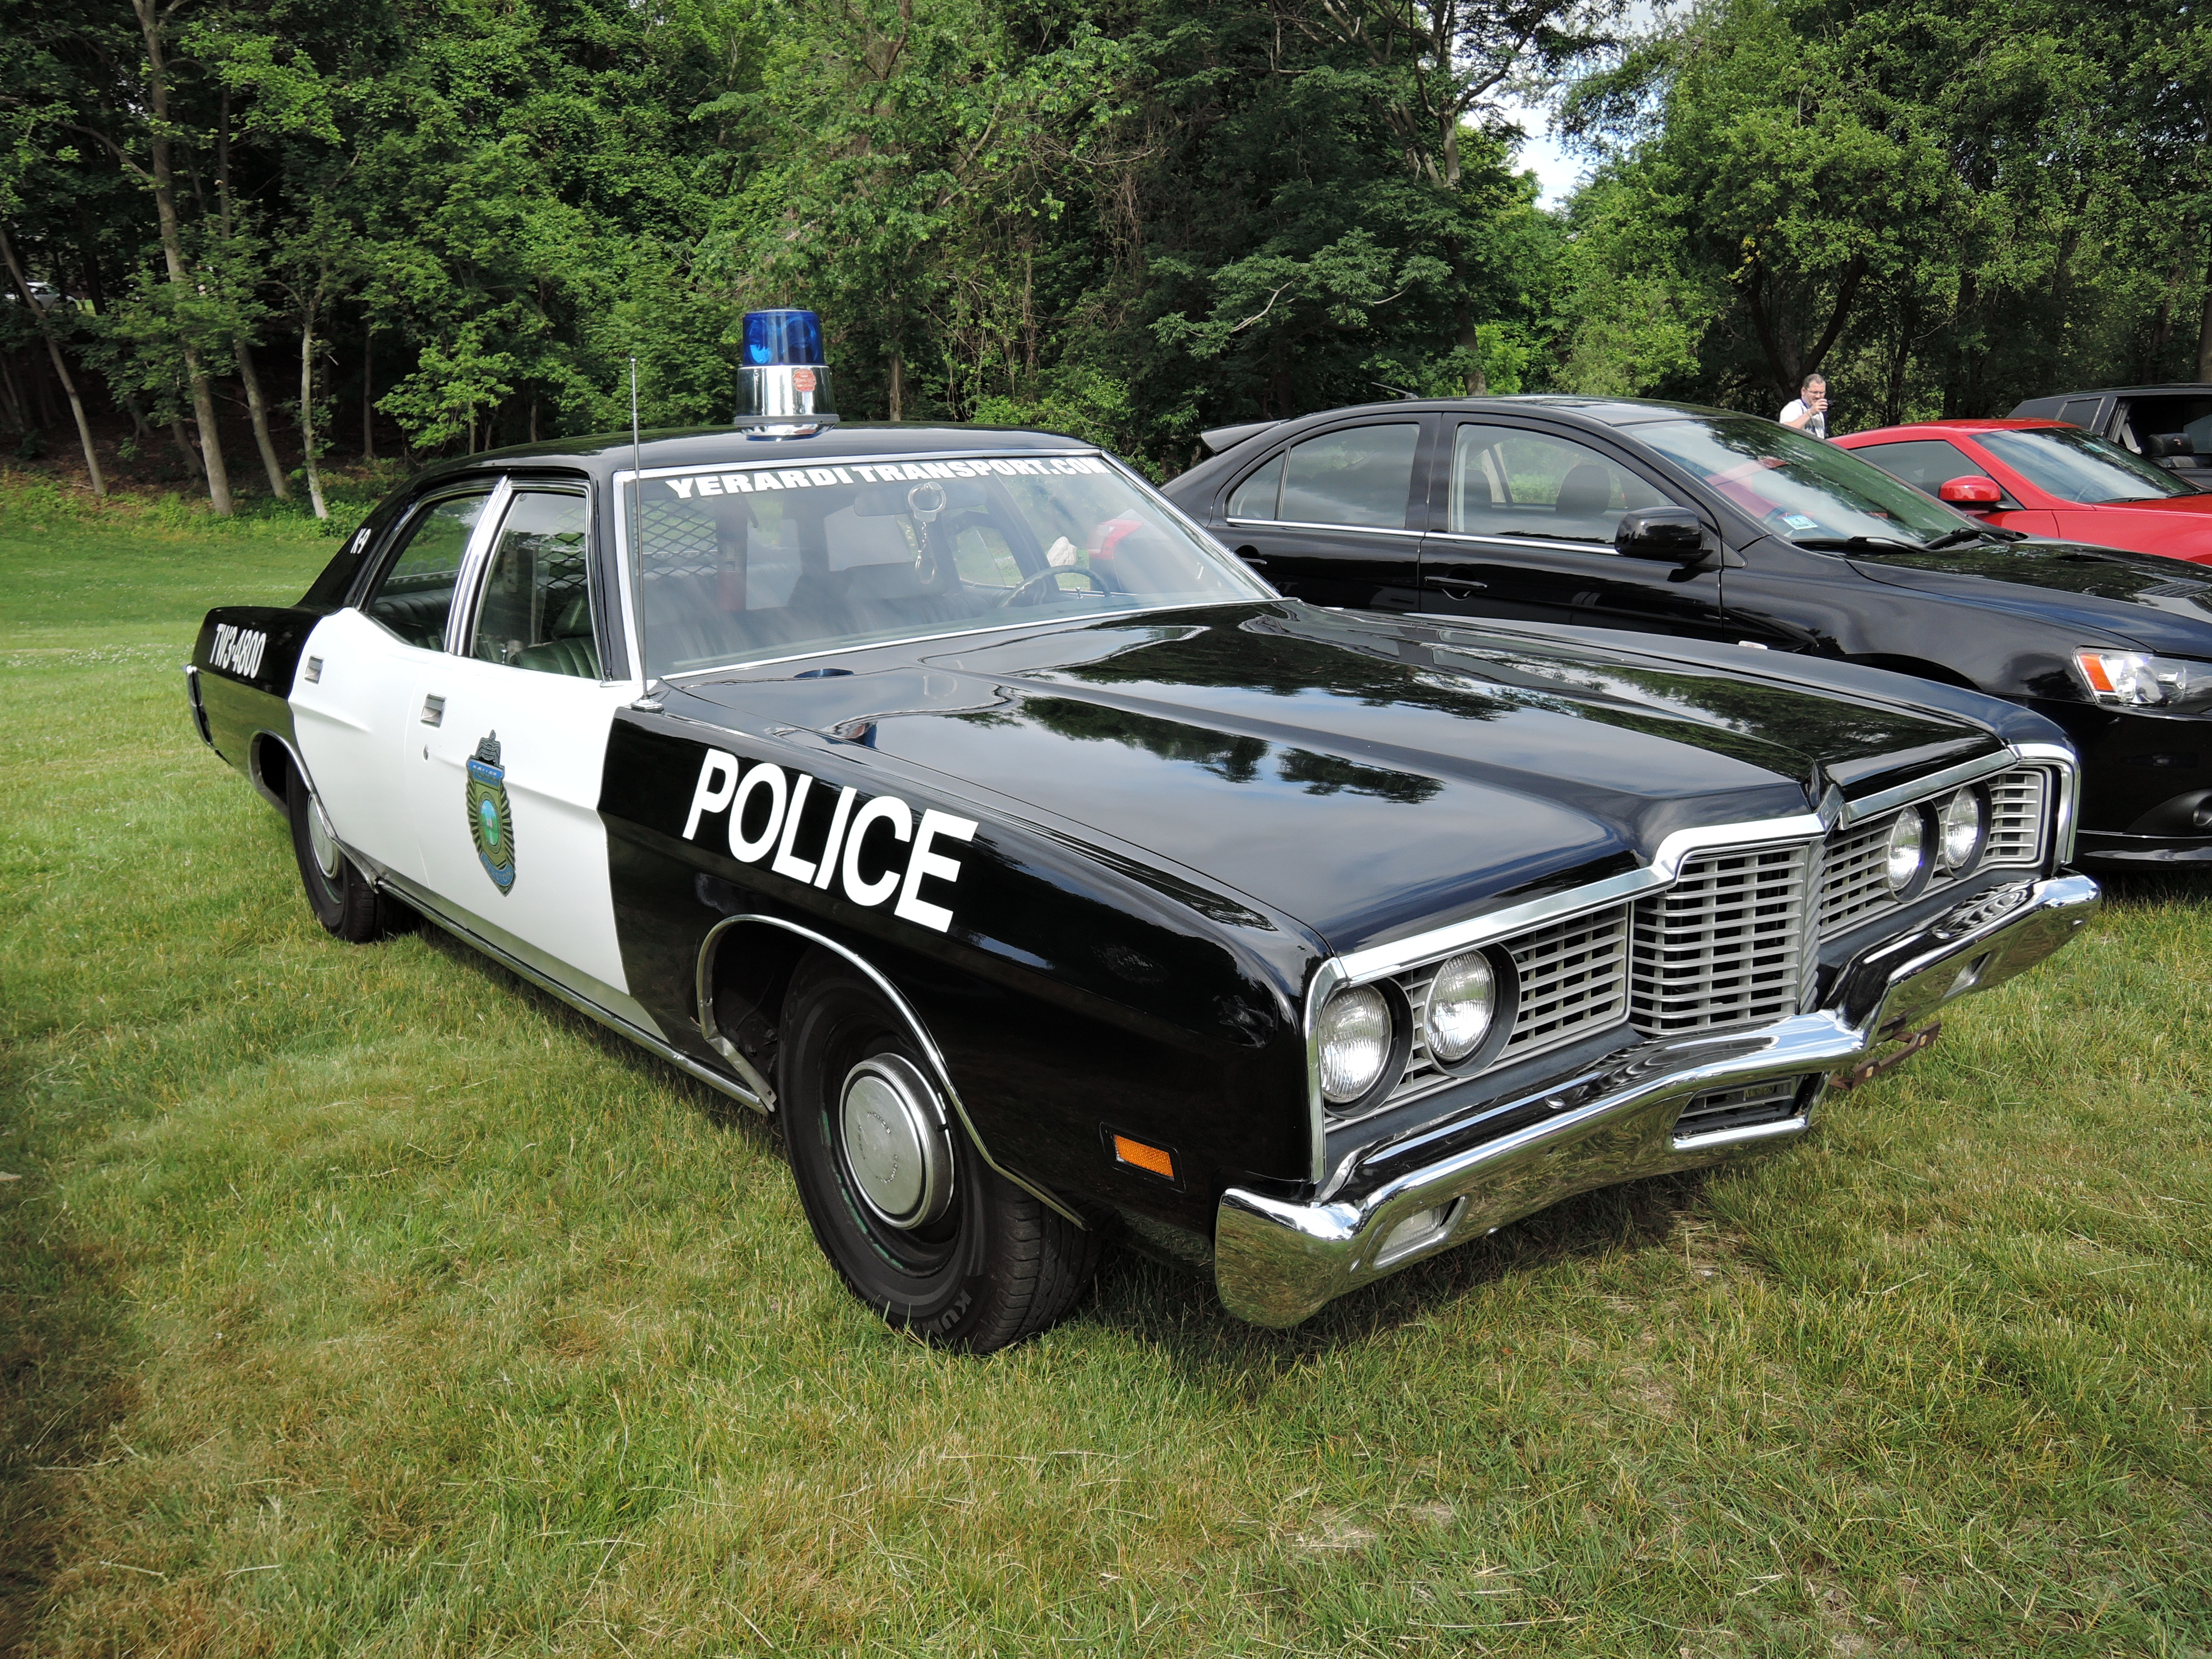 police car - cars and coffee car show at larz Anderson museum of transportation